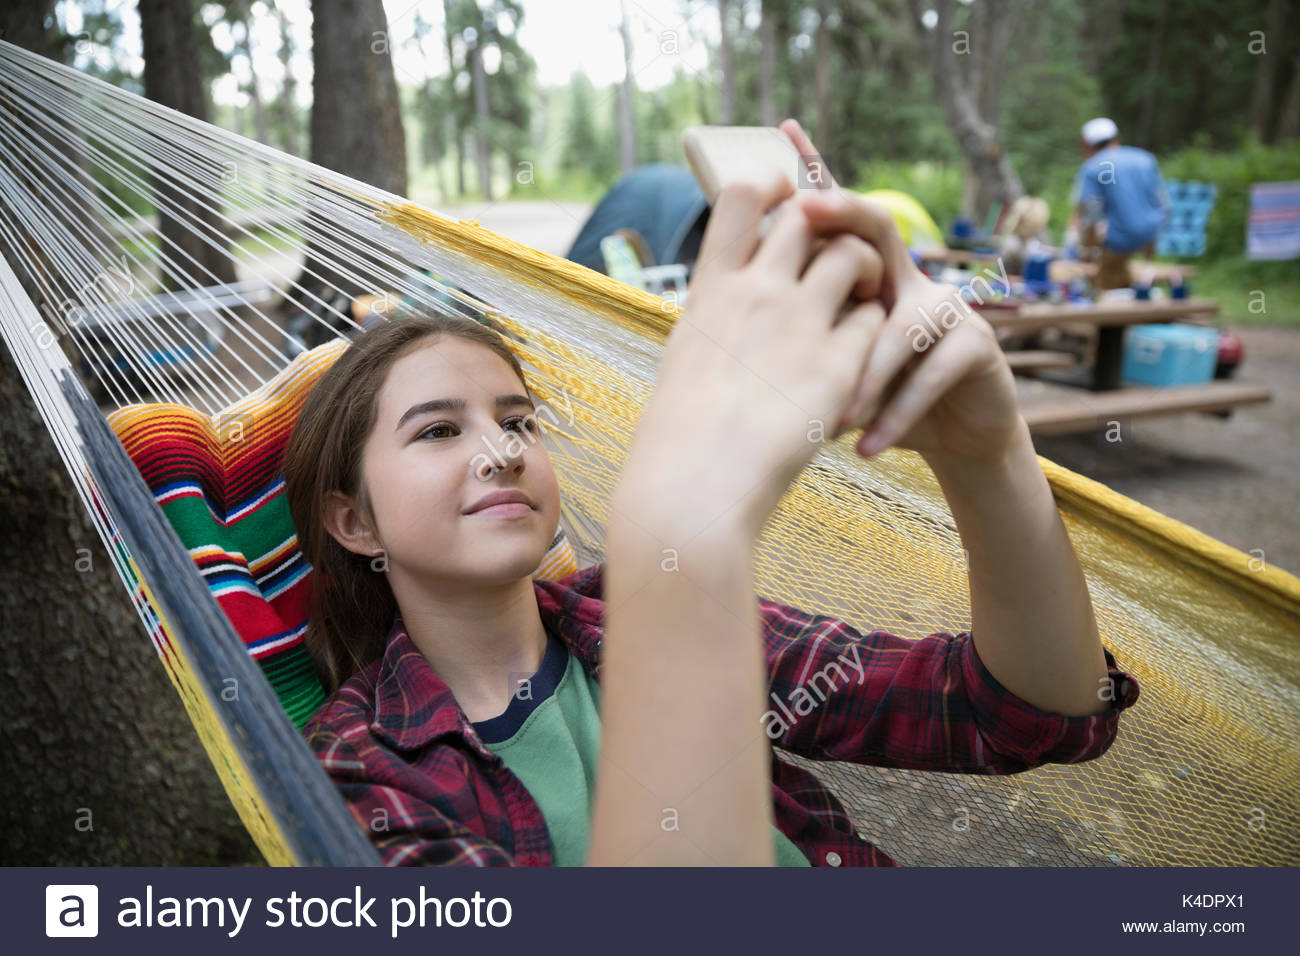 Teenage girl relaxing, texting with cell phone in hammock at outdoor school campsite - Stock Image